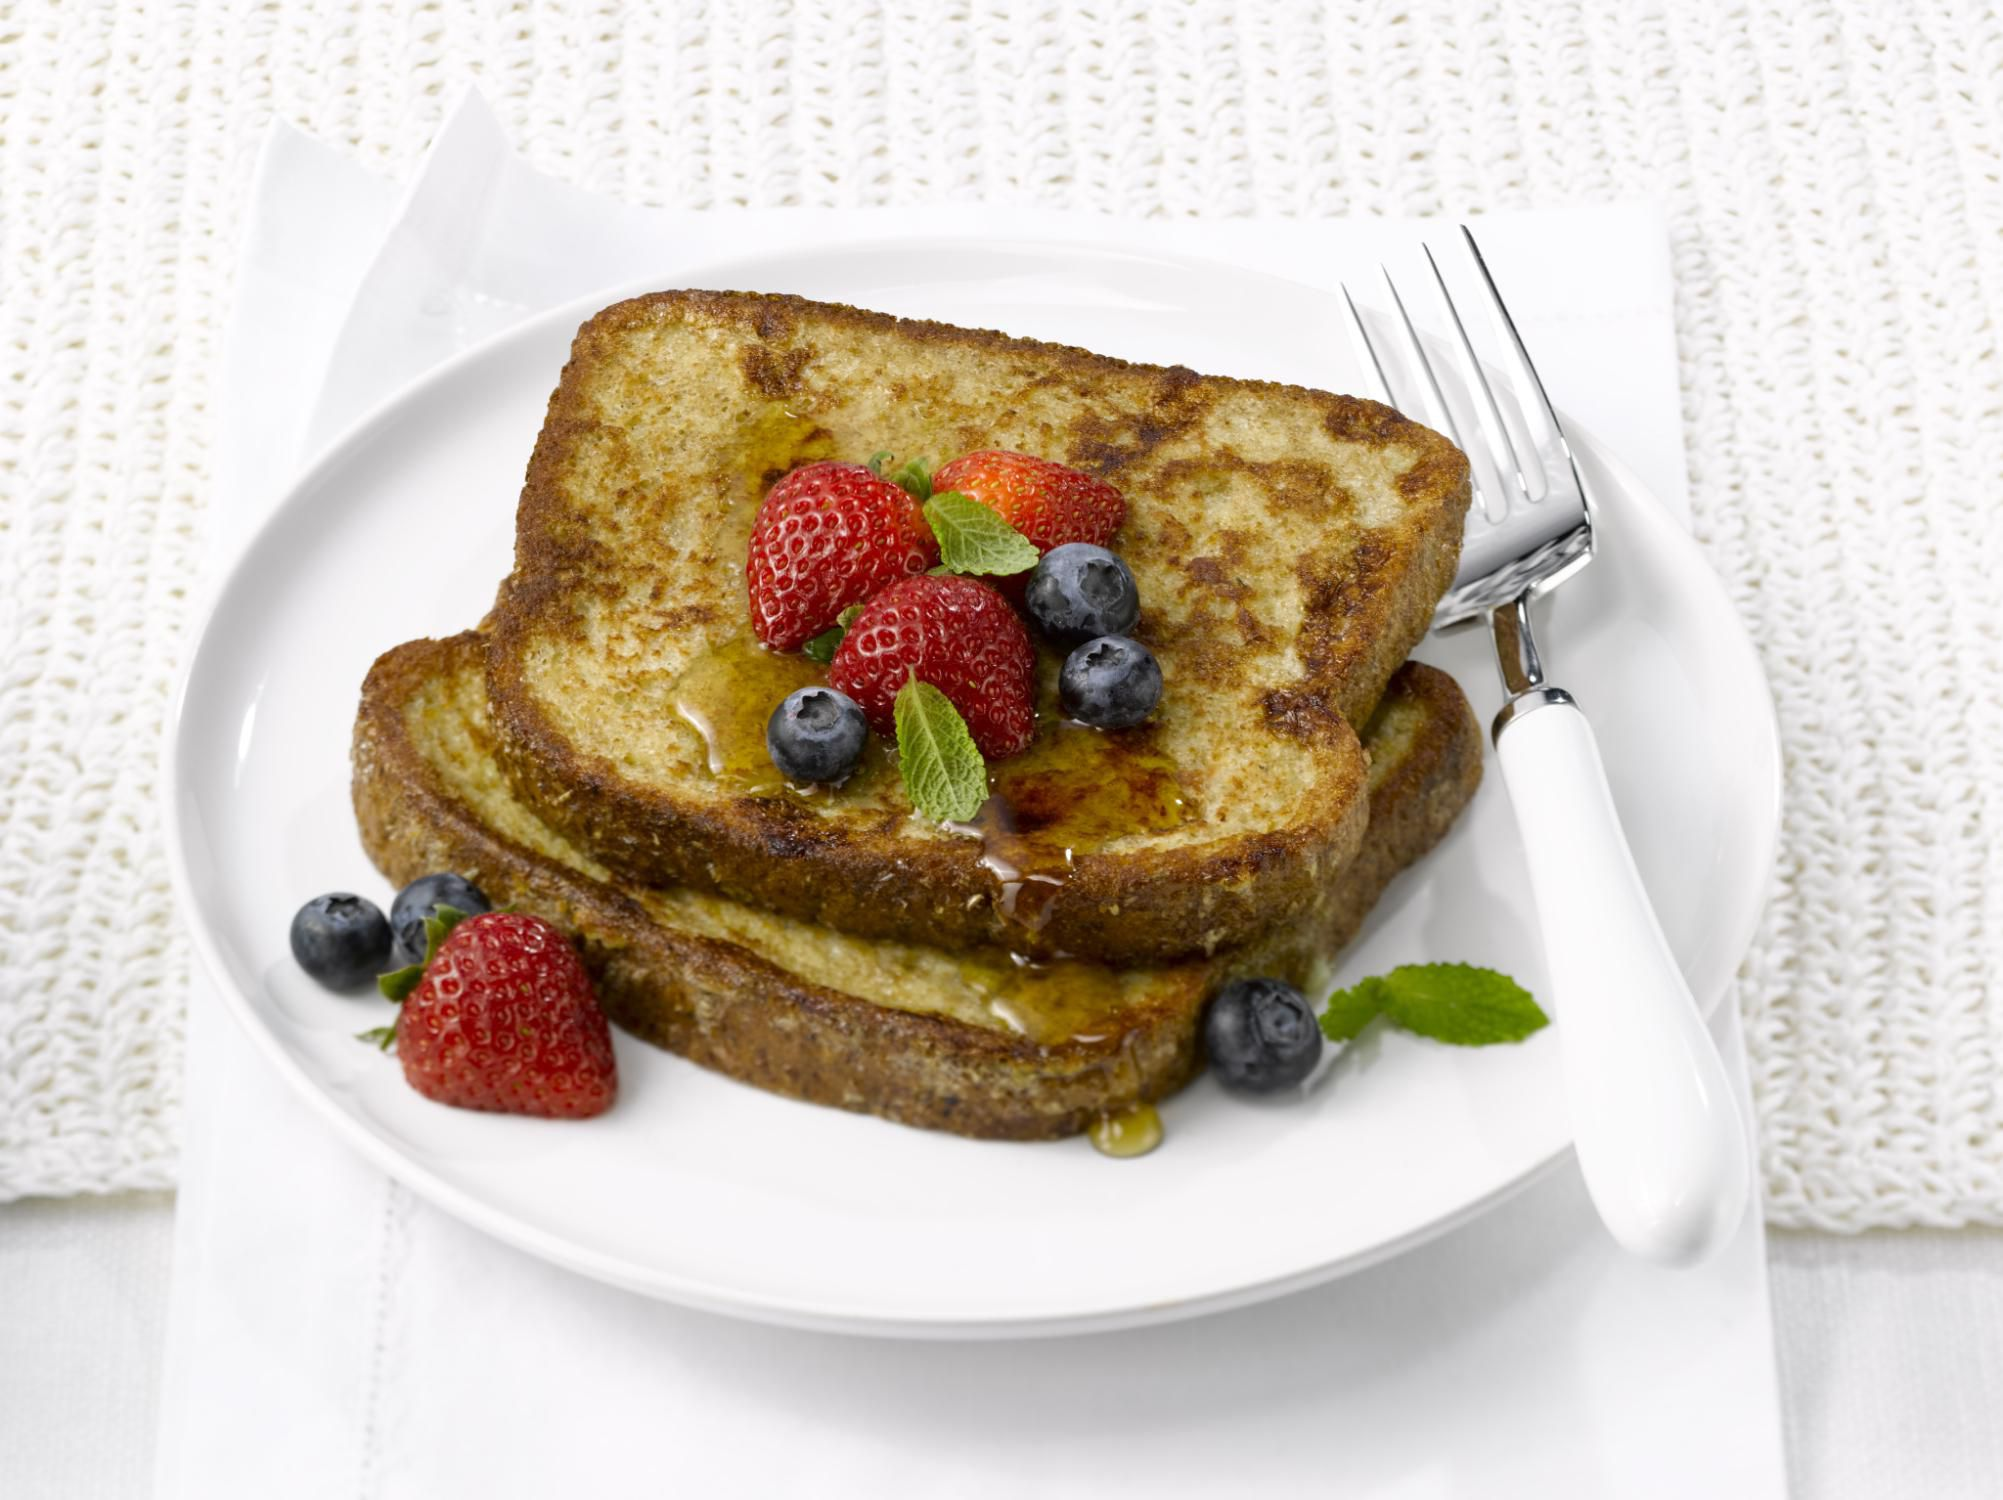 Dairy free french toast with soy rice or almond milk ccuart Gallery